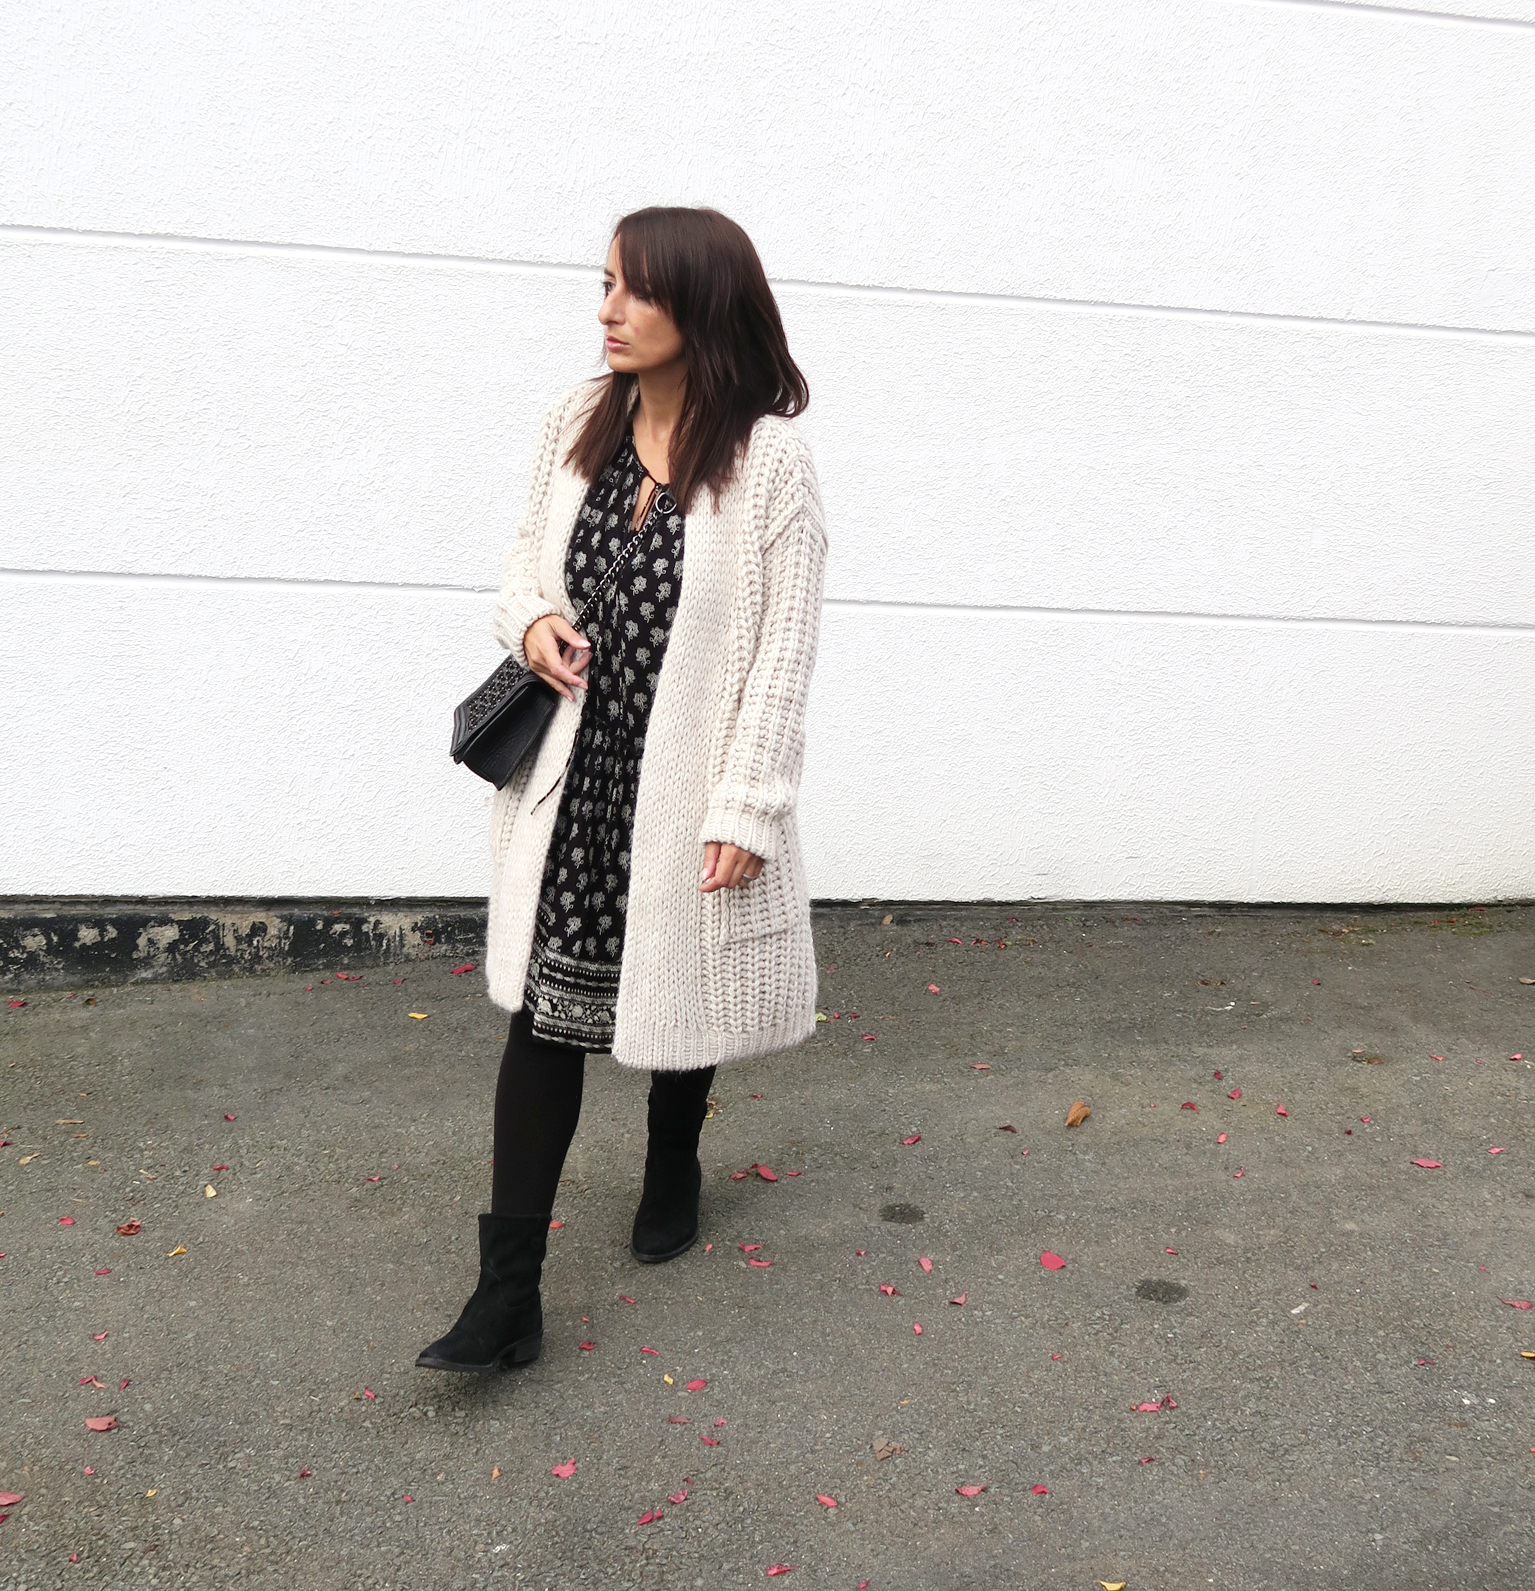 blogger-style-winter-dress-knit-fashionblogger-streetstyle-boots-1